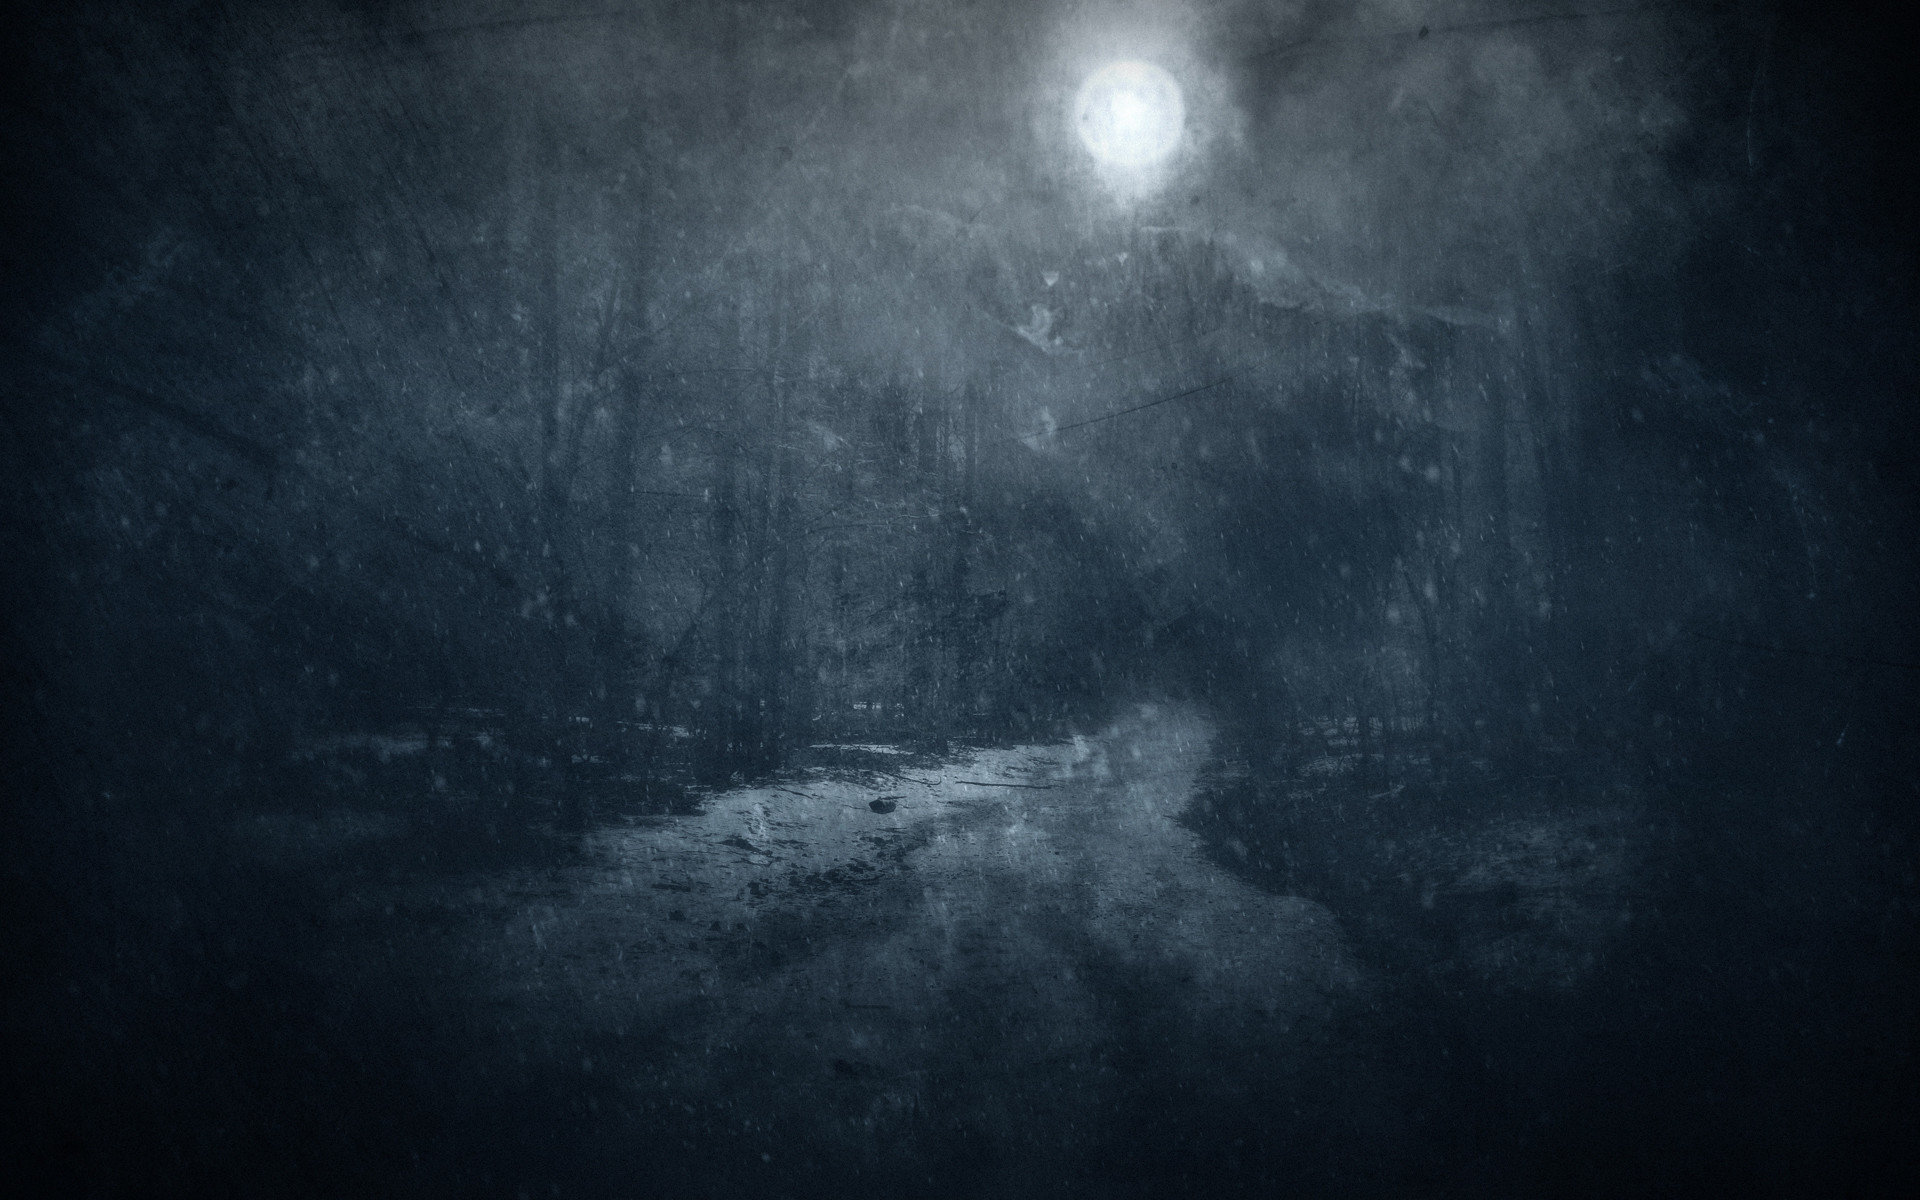 Dark Landscape Wallpapers 1920x1200 Desktop Backgrounds